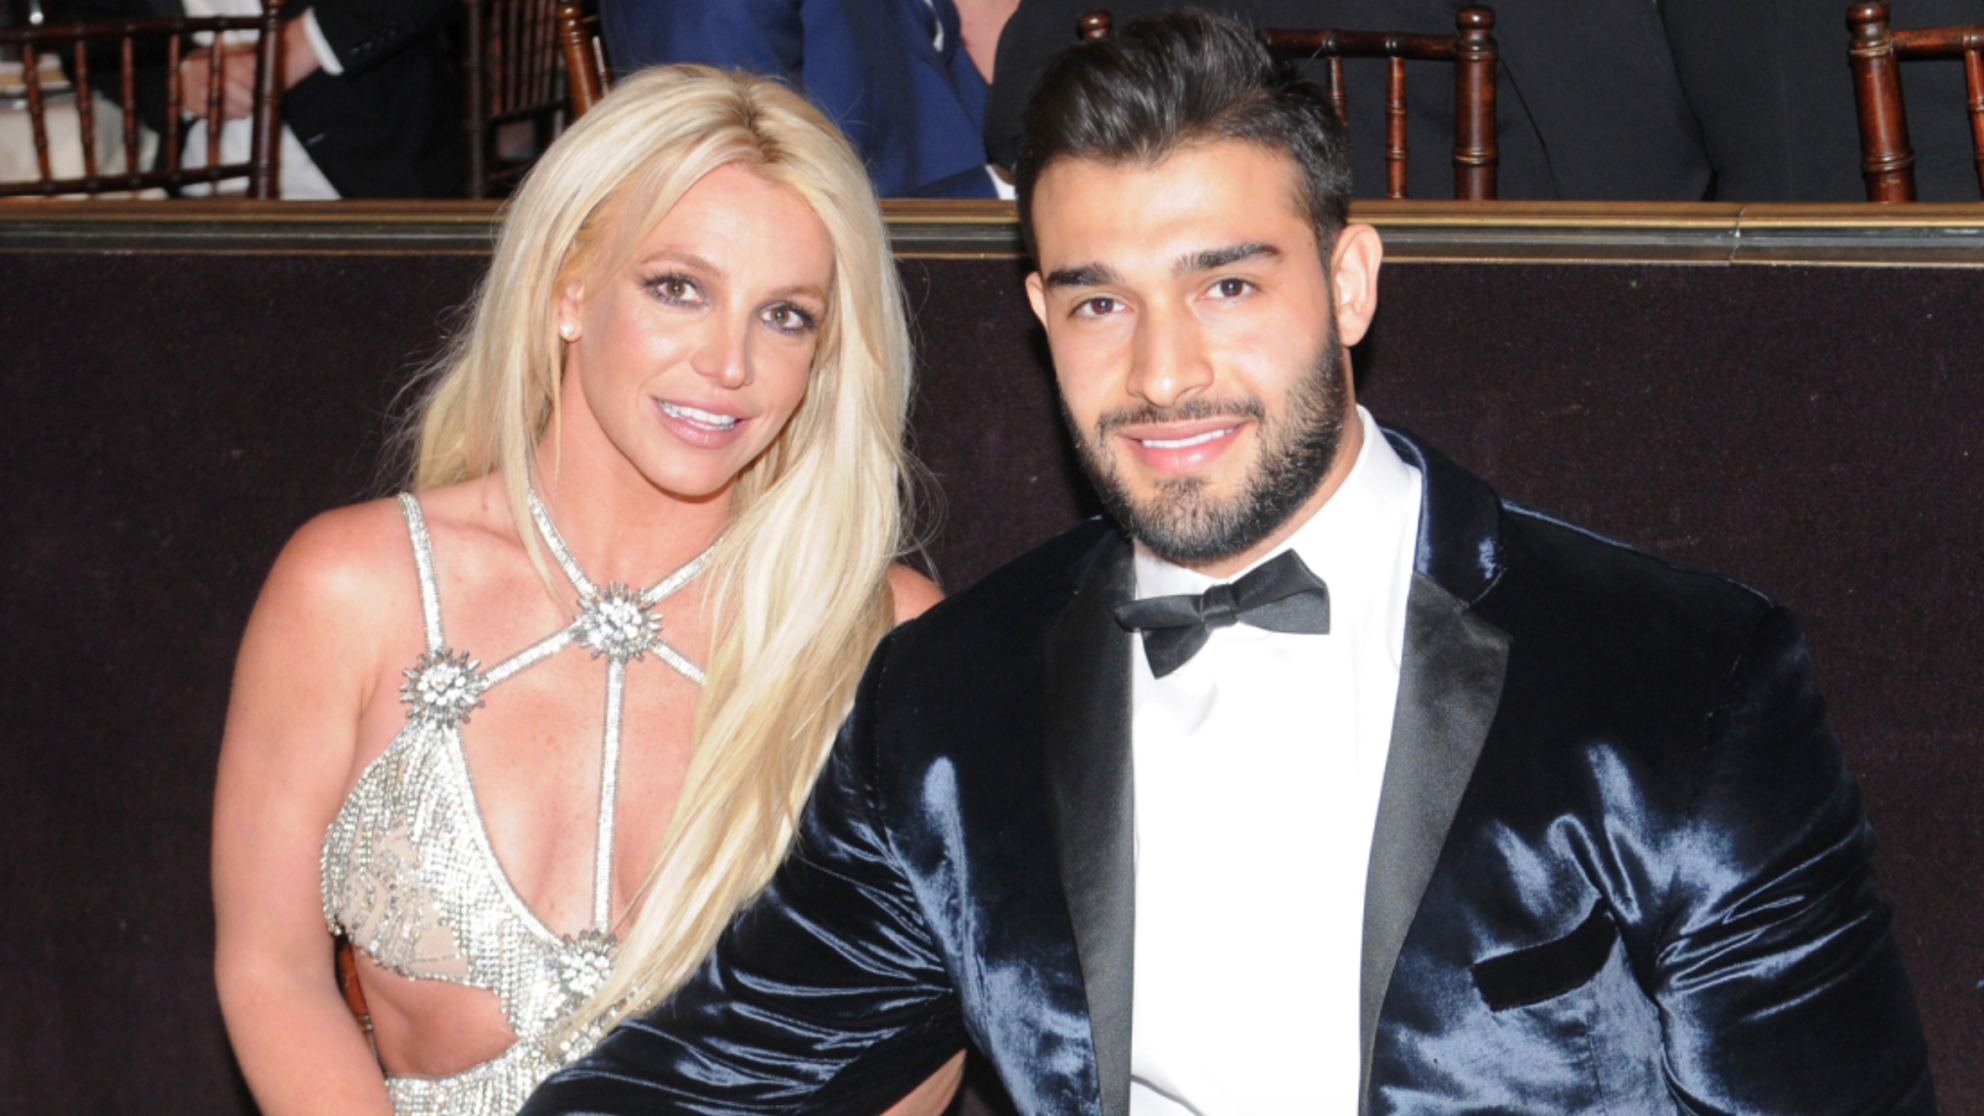 Britney Spears' Boyfriend Sam Asghari on How He Lost 100 Lbs. — and the Couple's Fun Workouts